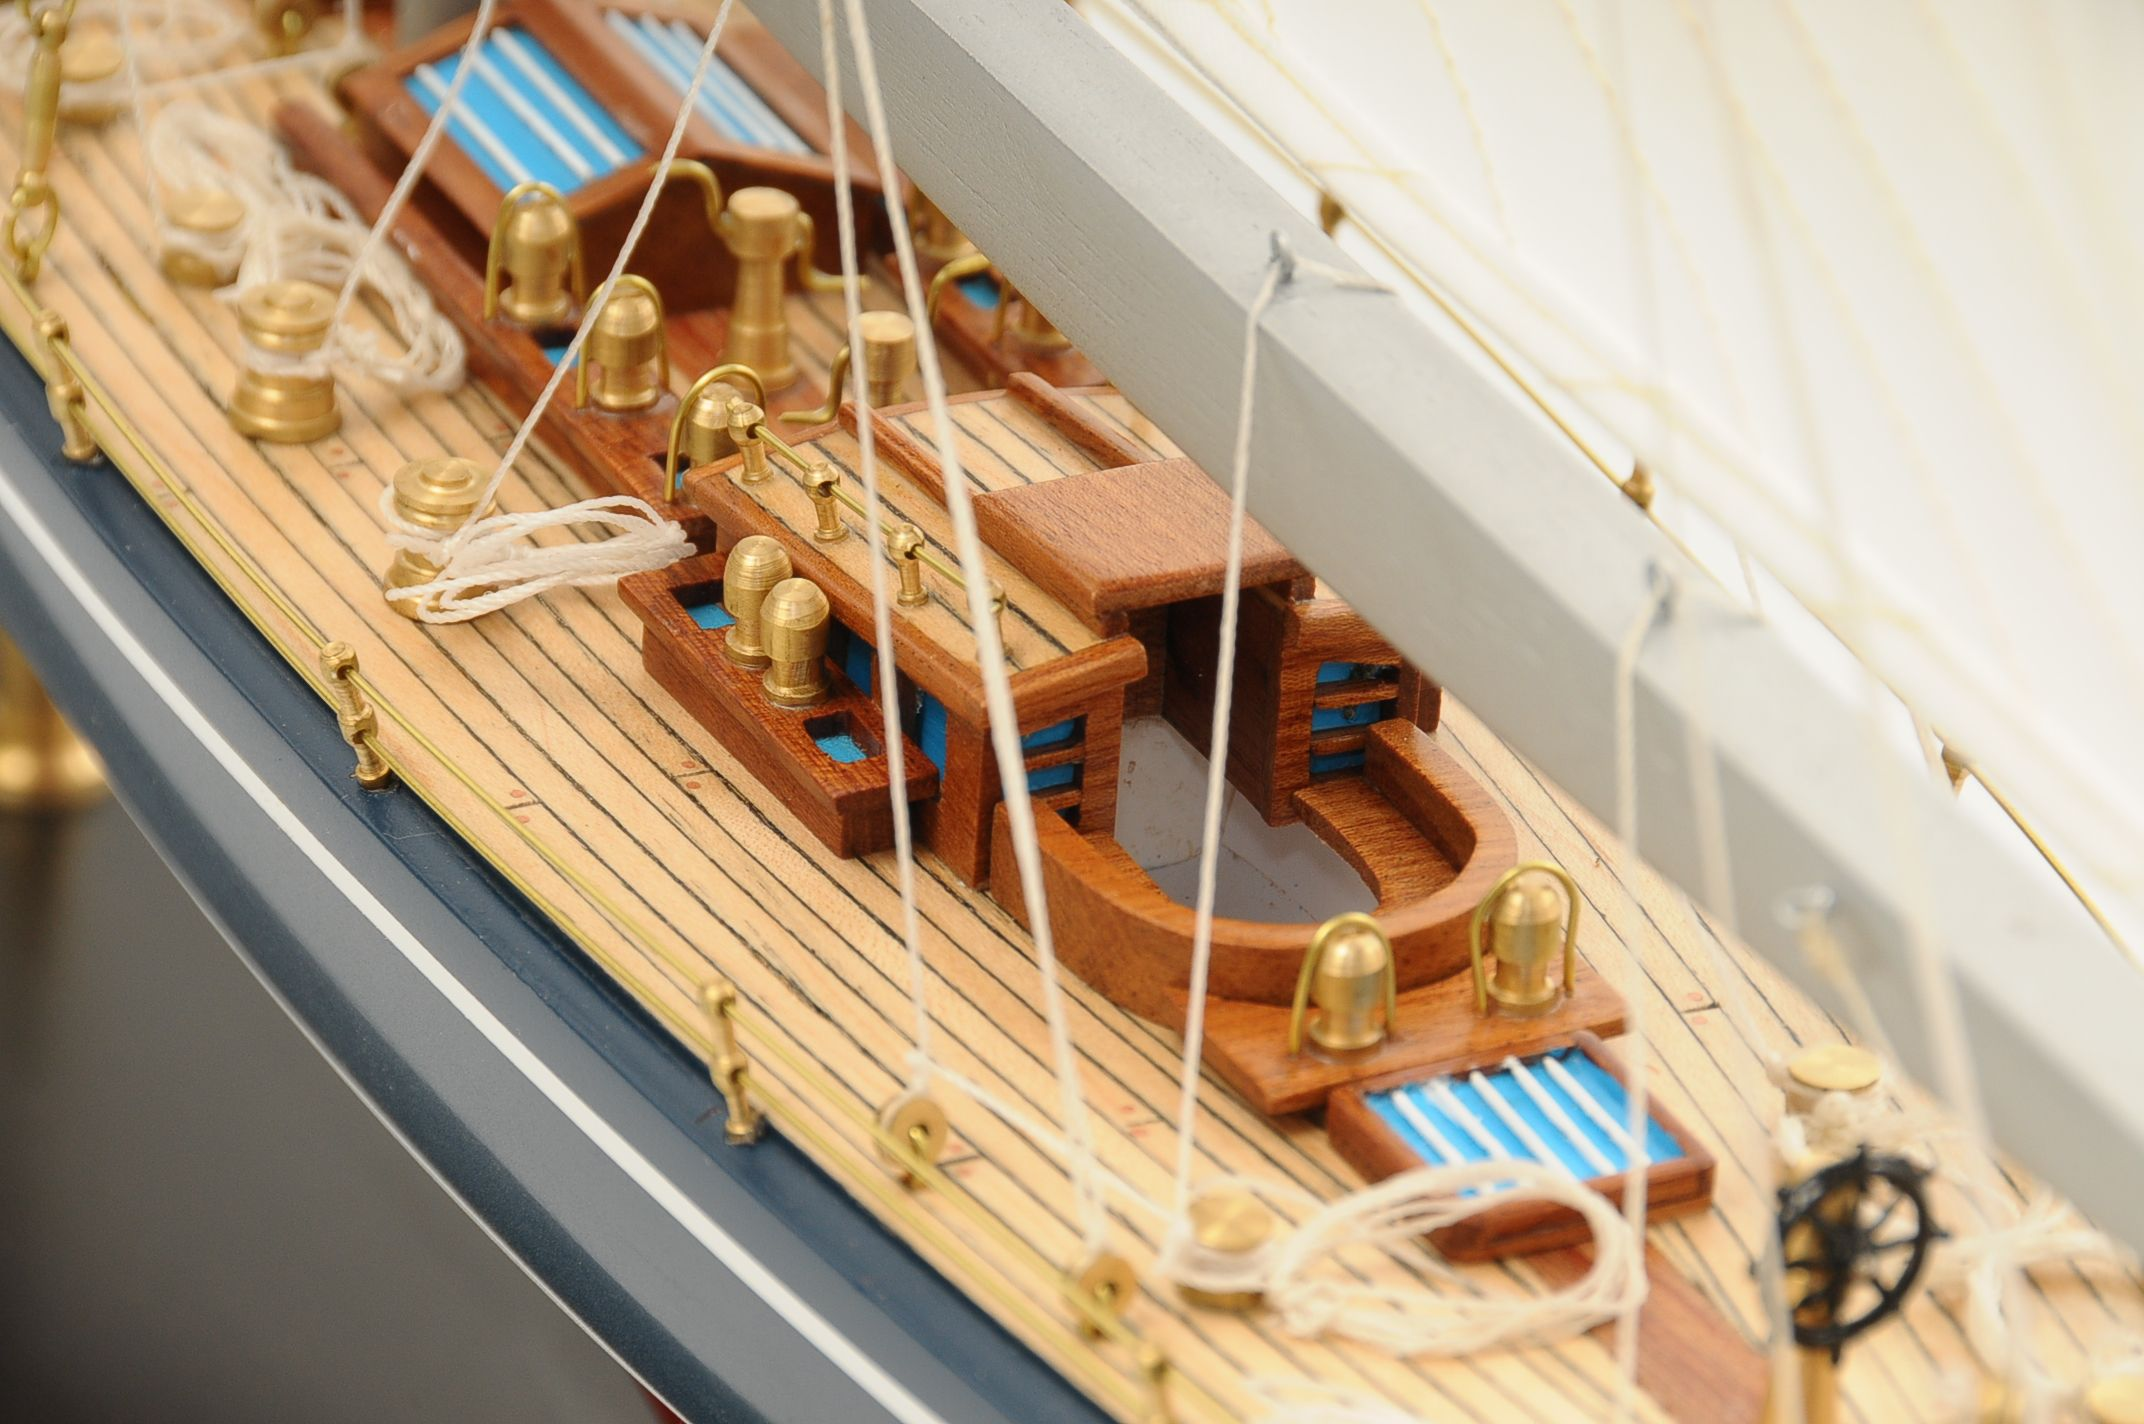 472-8253-Endeavour-Model-Yacht-Superior-Range